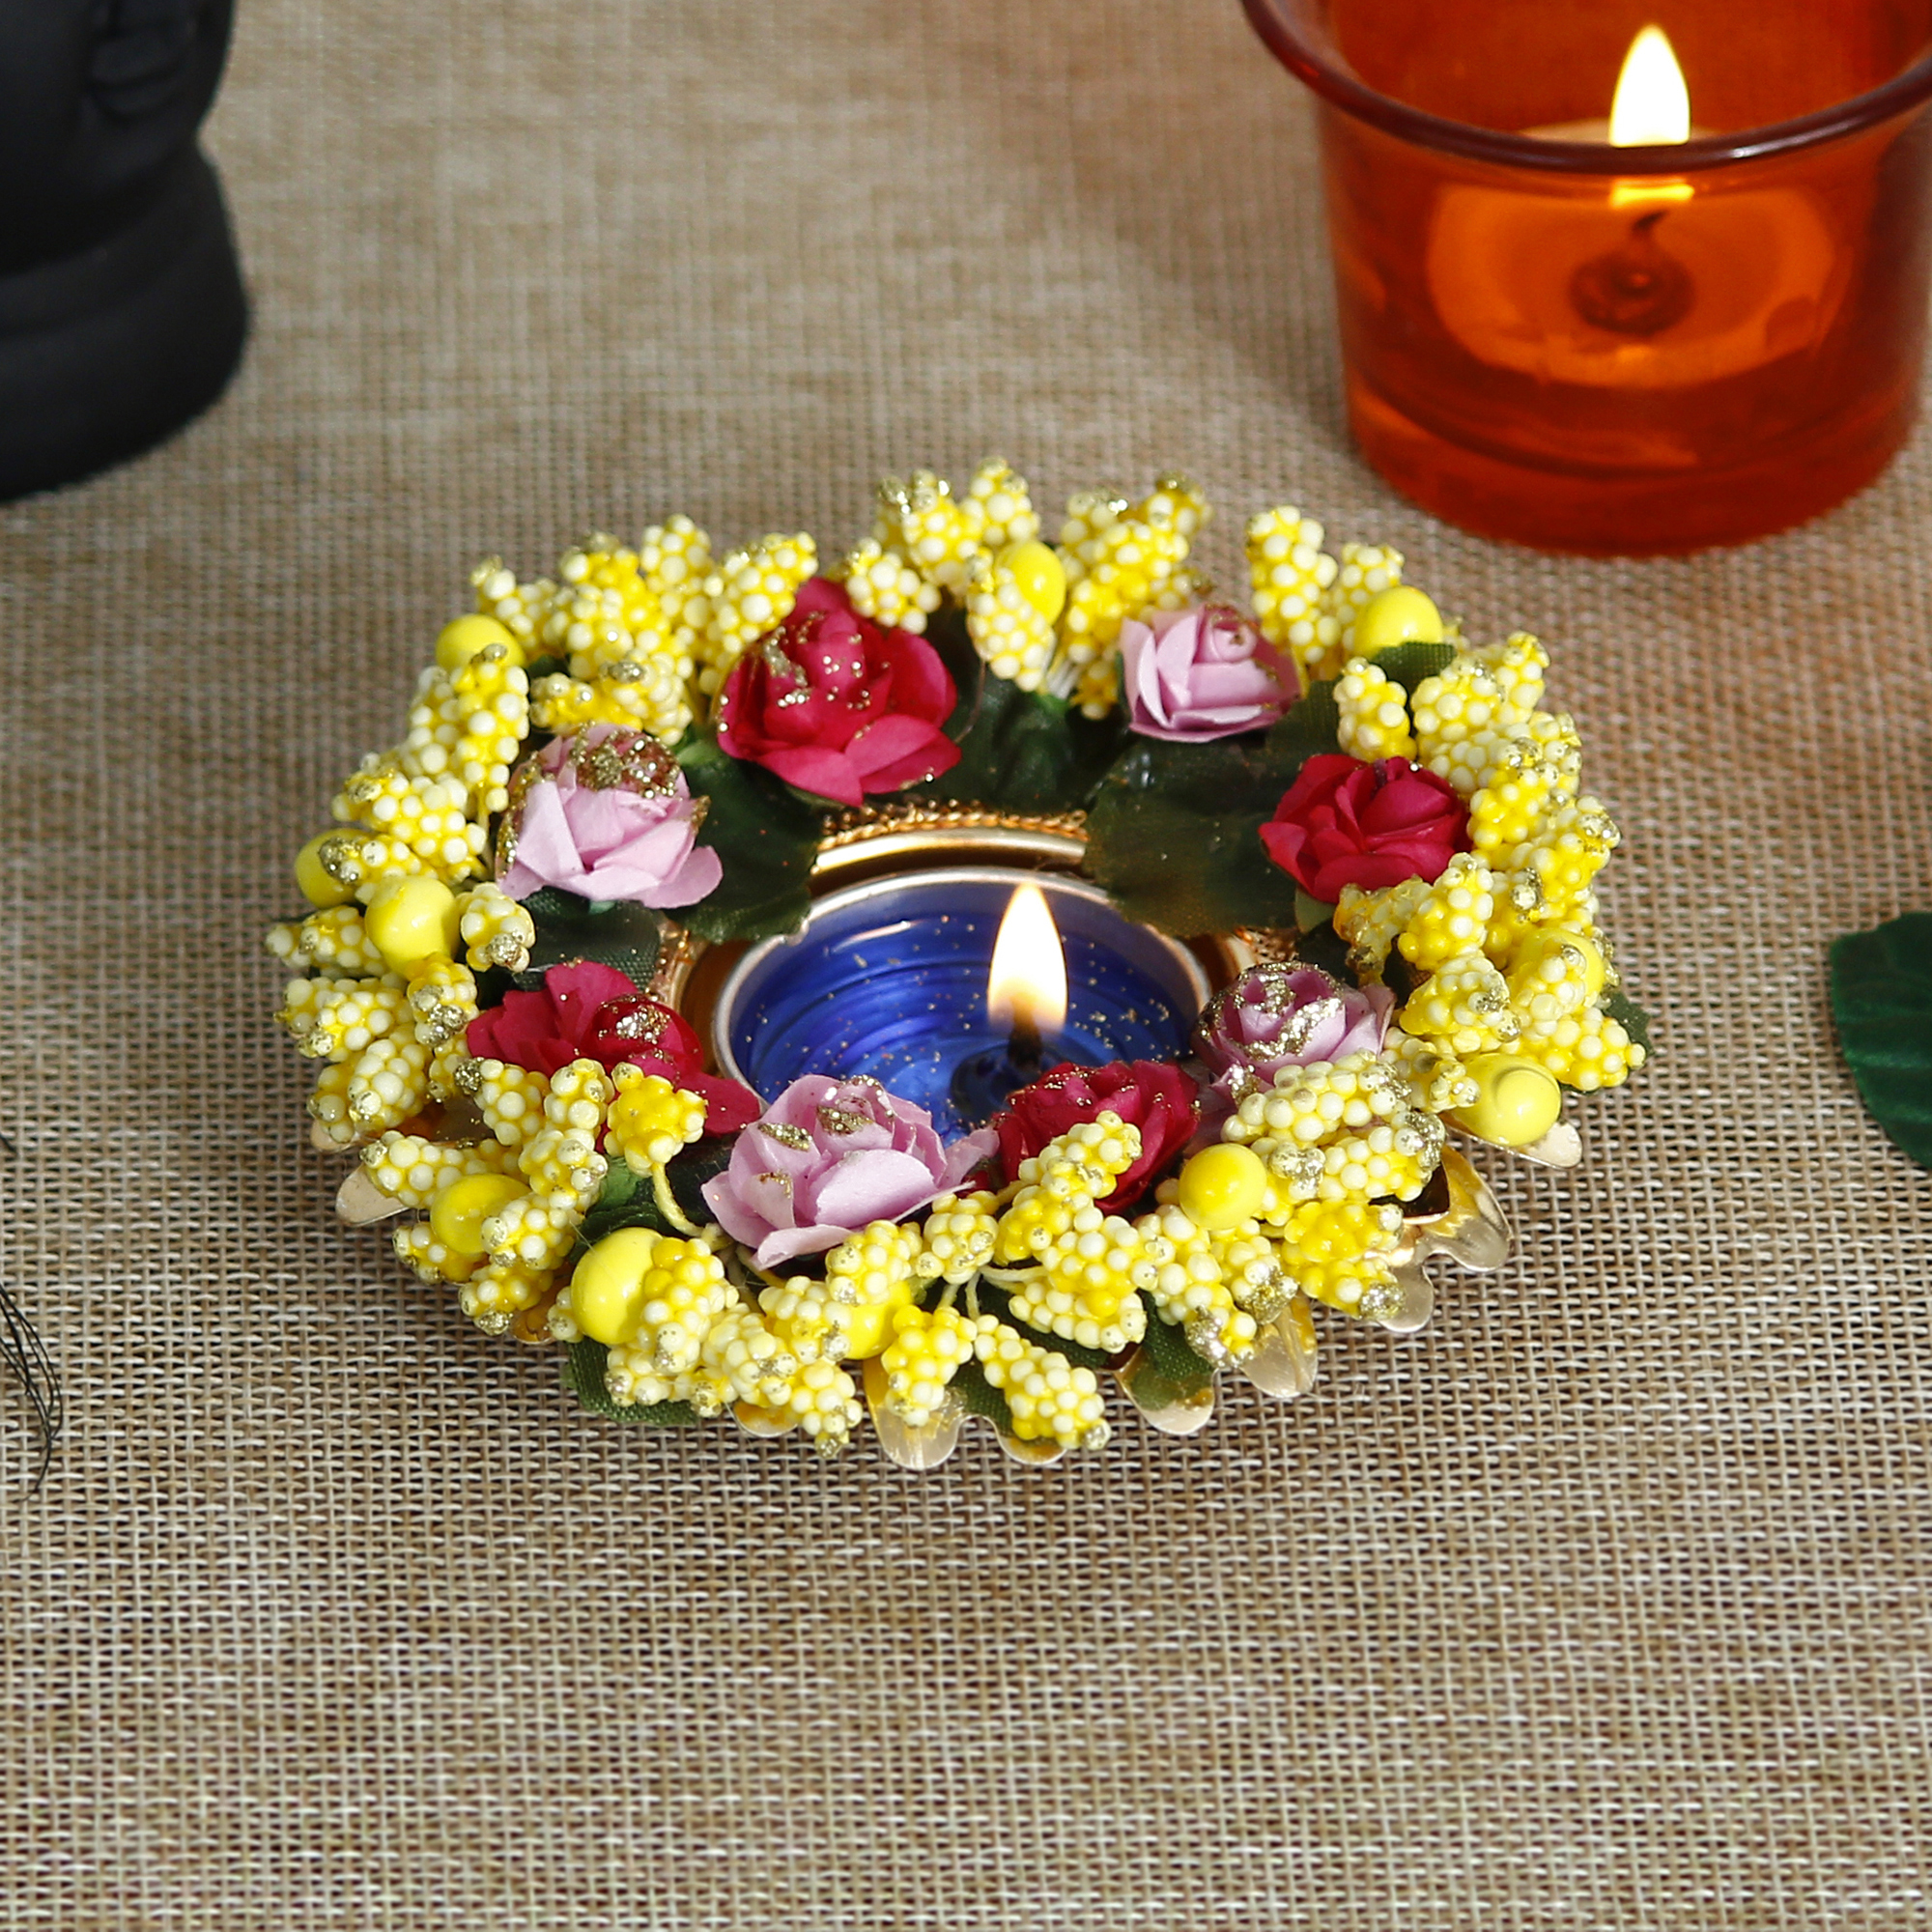 Decorative Handcrafted Yellow Floral Tea Light Holder Indian Home Decor